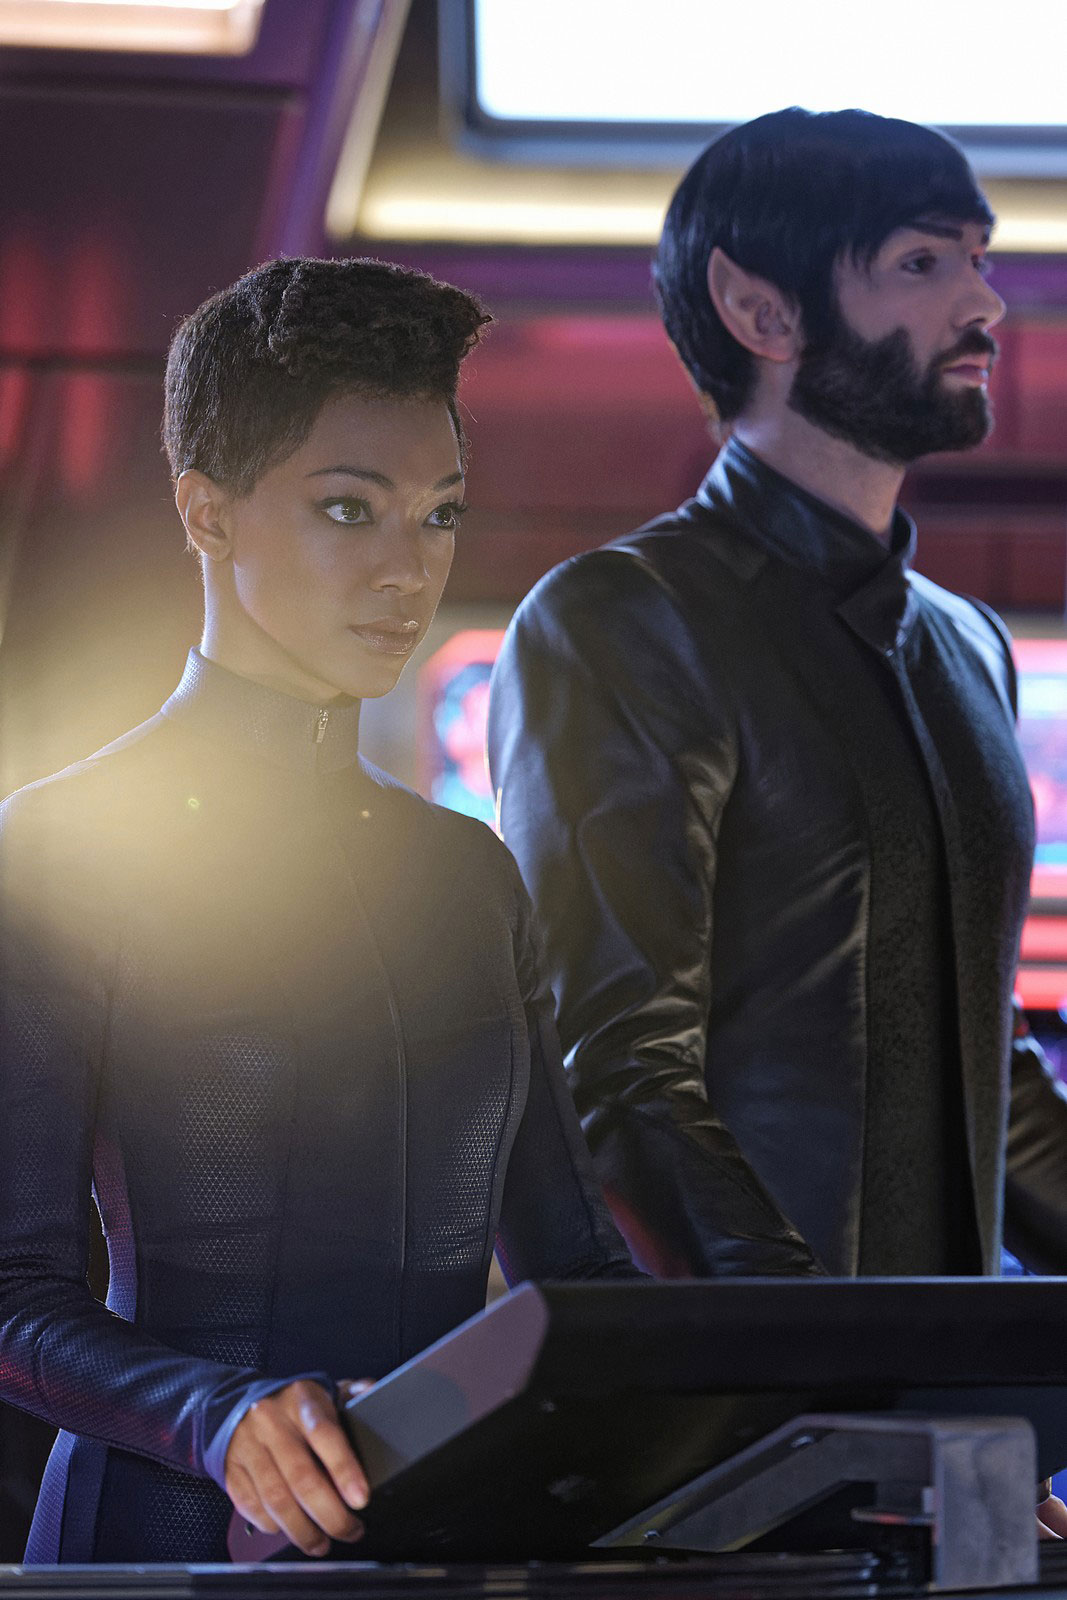 Sonequa Martin-Green as Michael Burnham and Ethan Peck as Spock